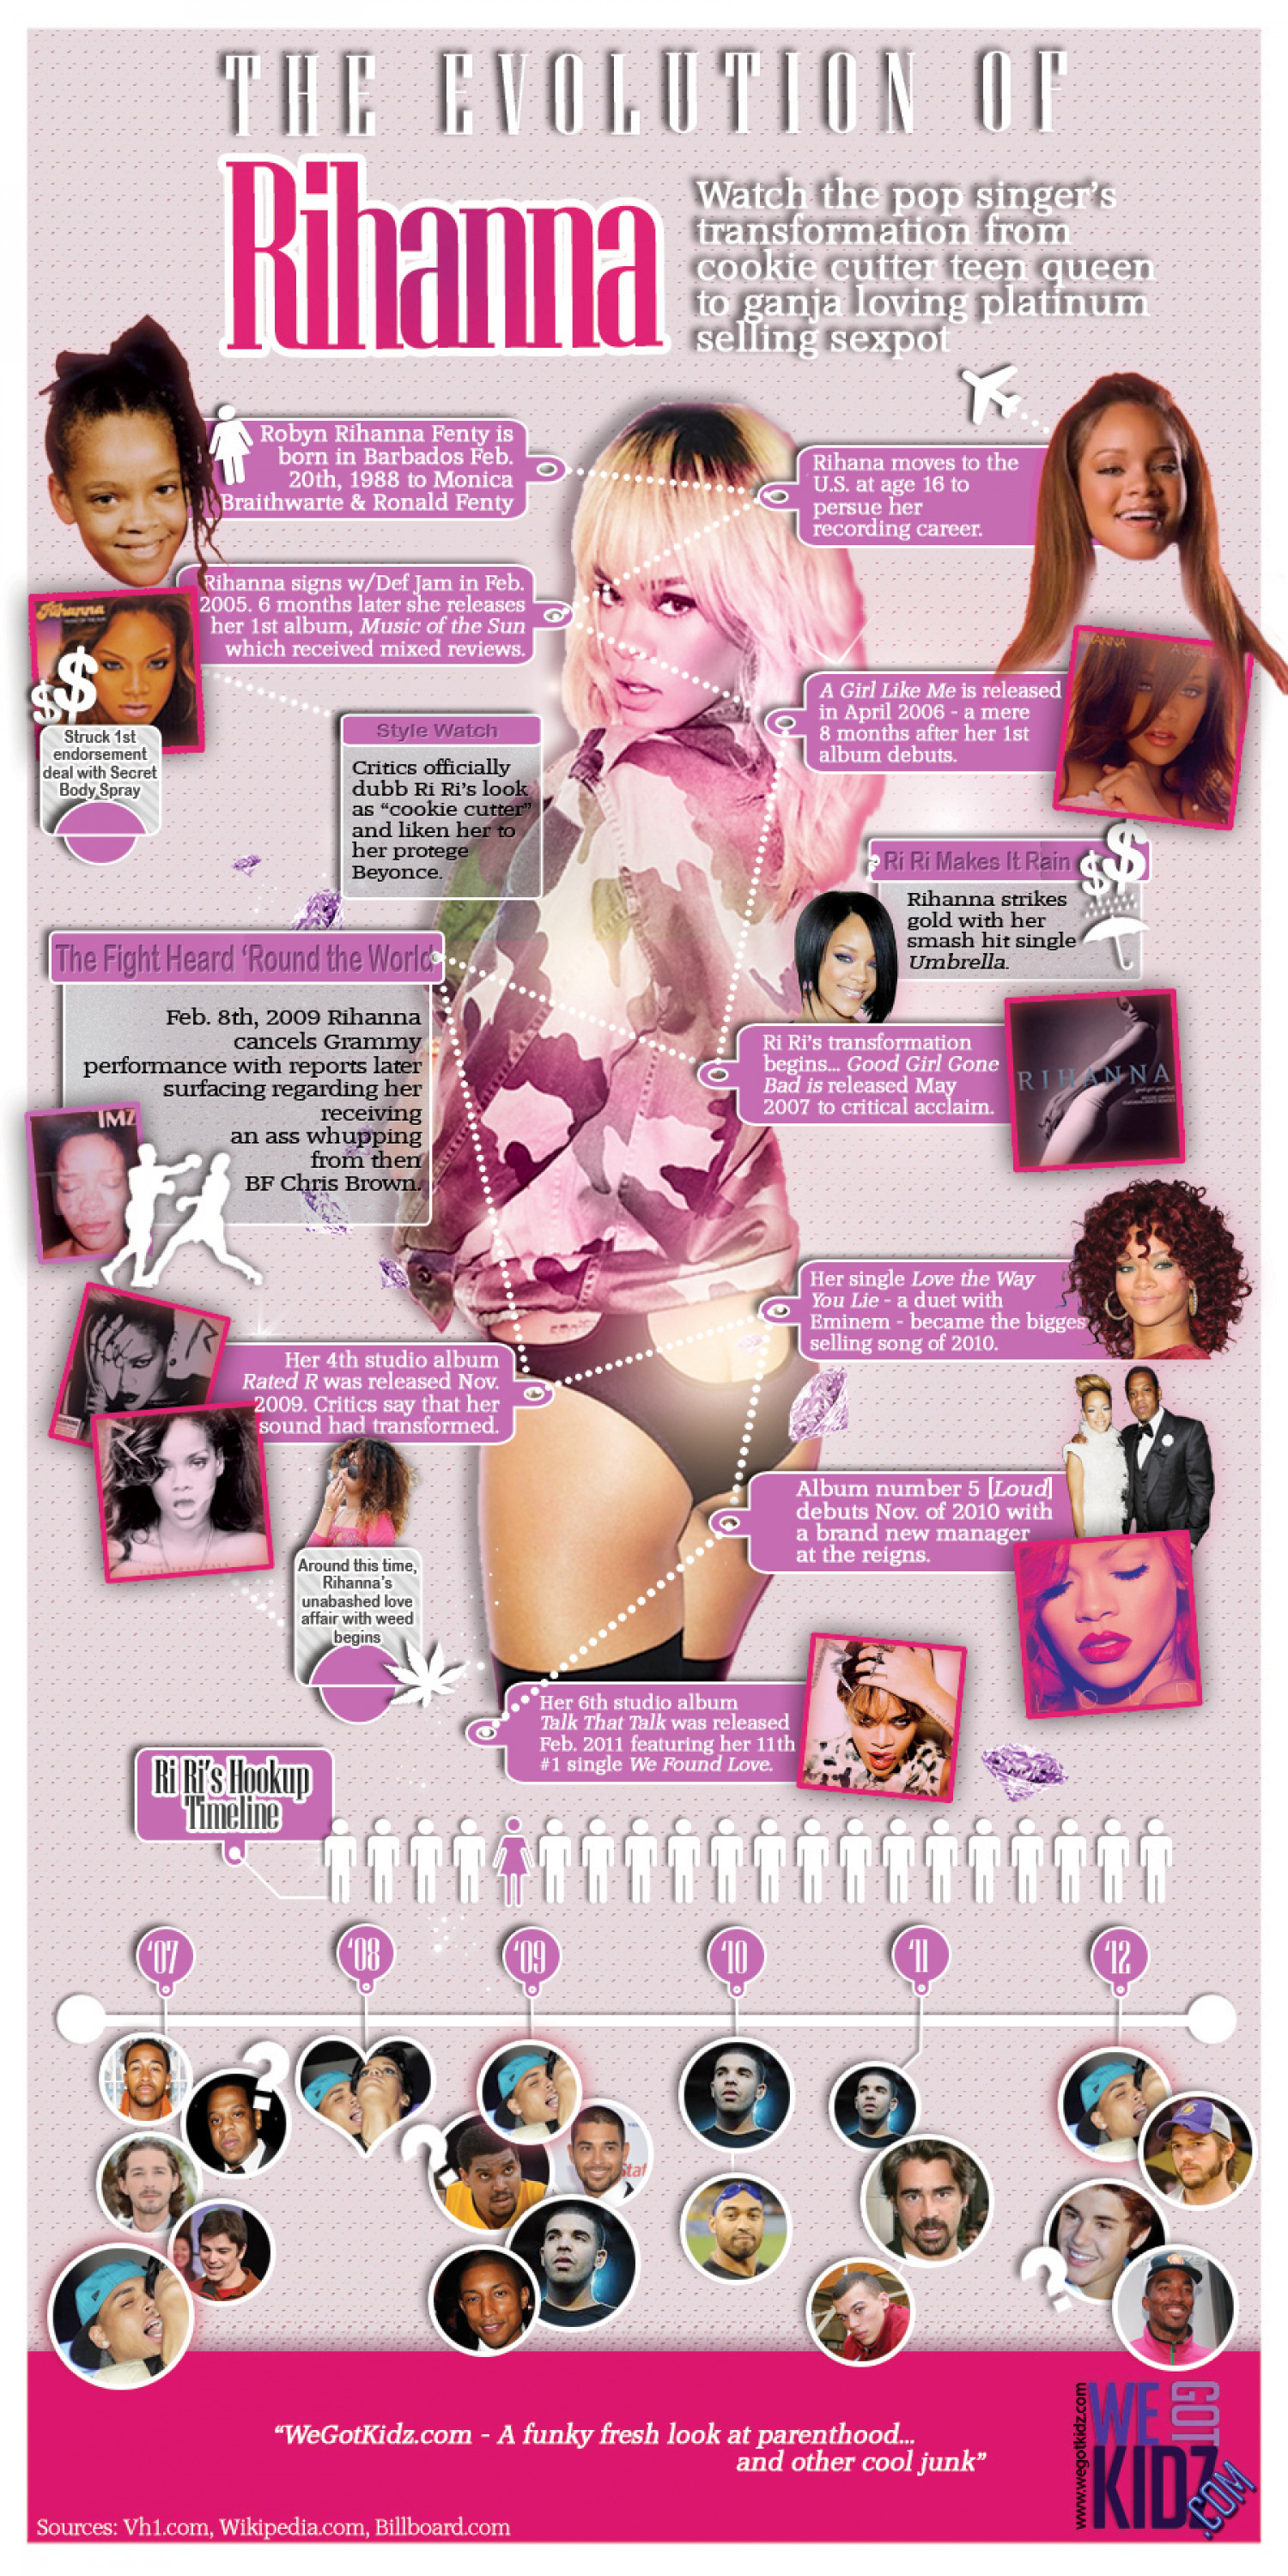 The Evolution of Rihanna Infographic